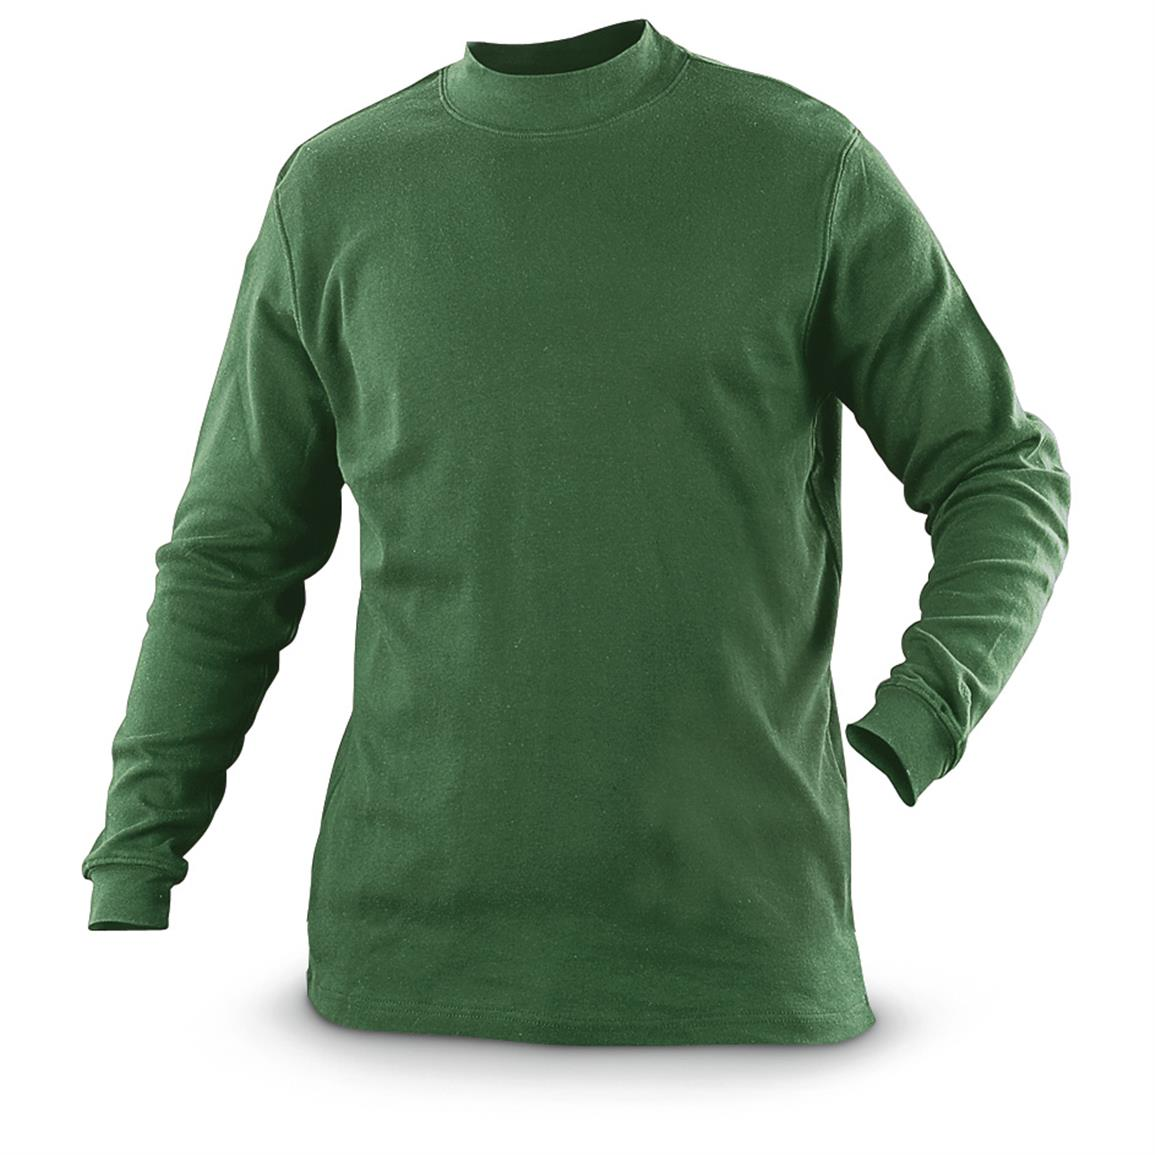 Green Long Sleeve Shirt Men